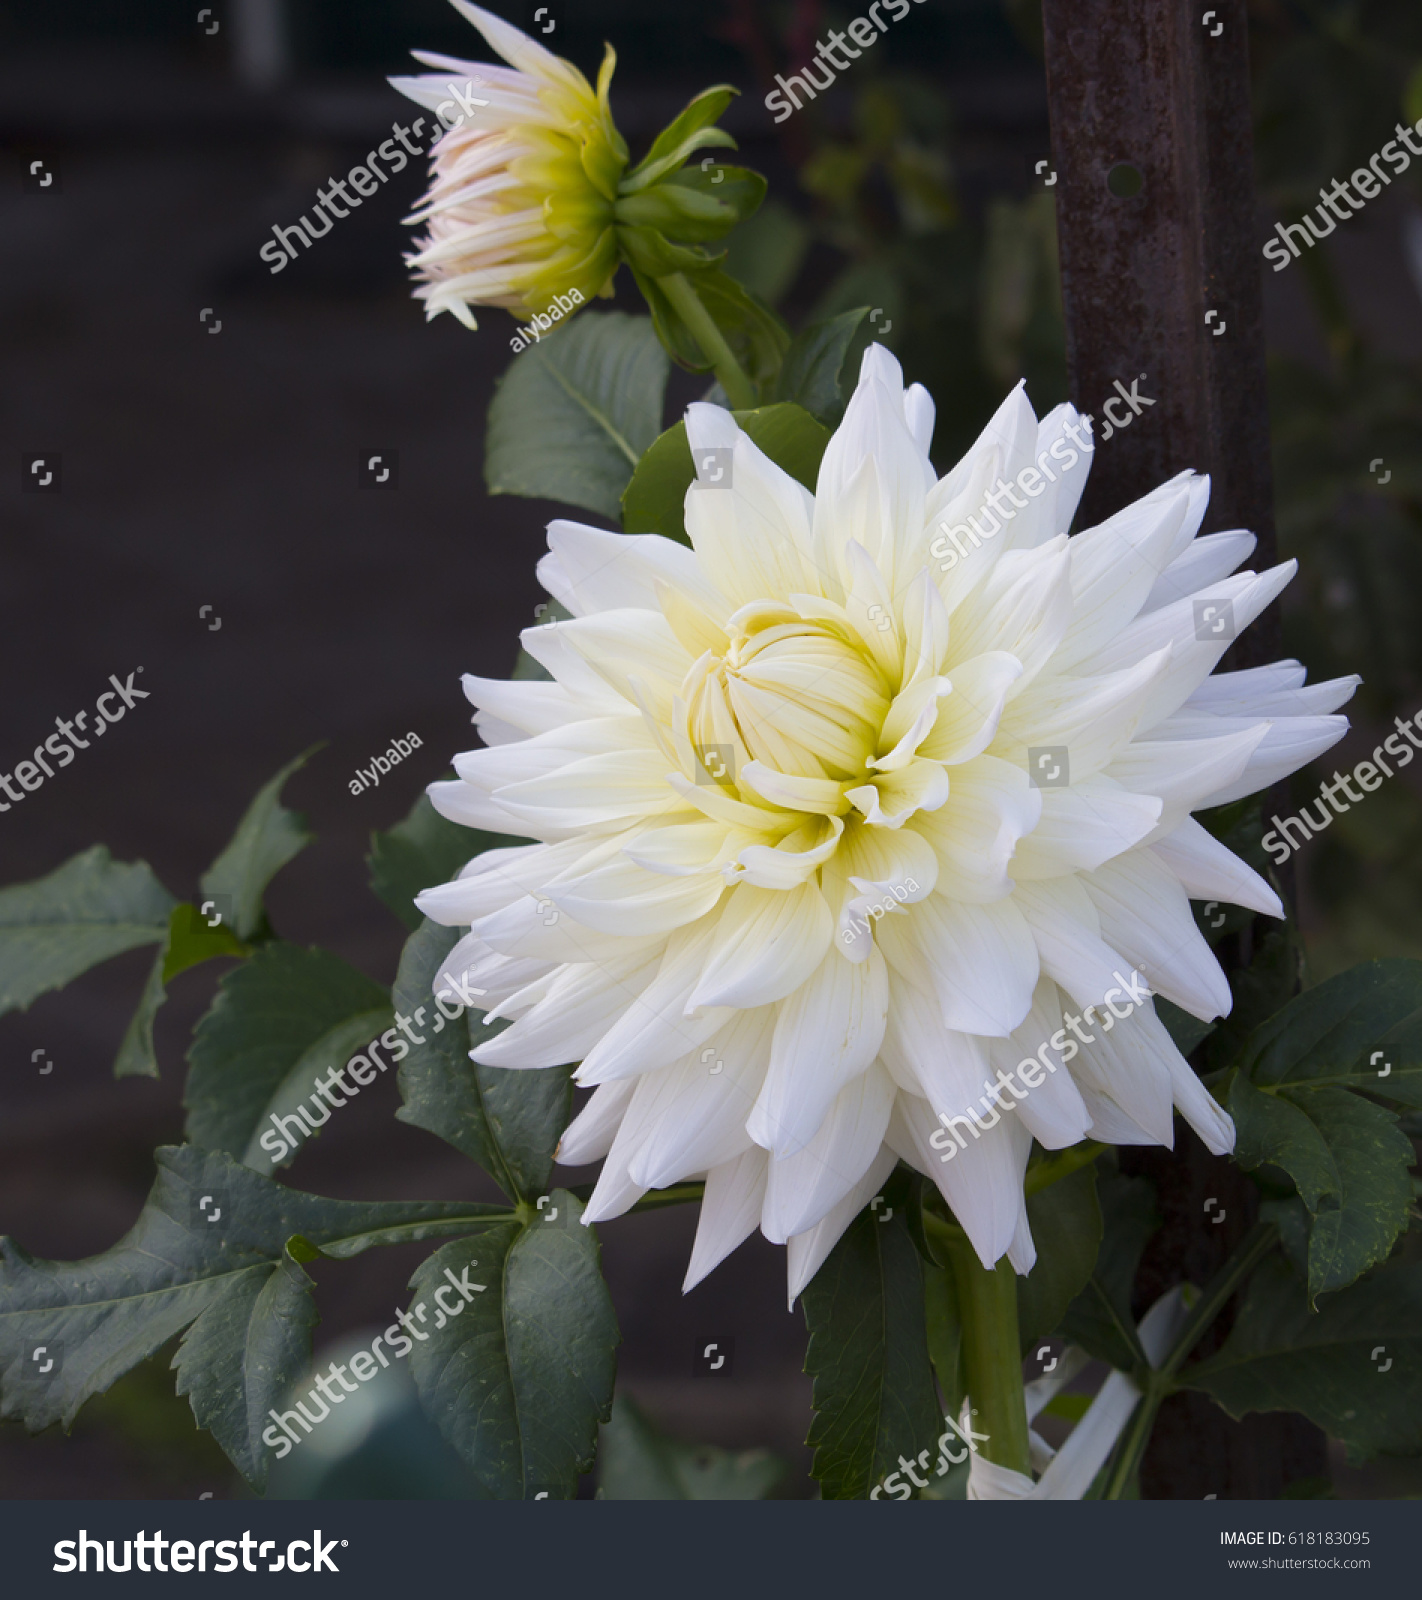 Double white dahlia flowers genus bushy stock photo edit now double white dahlia flowers a genus of bushy tuberous herbaceous perennial plants in bloom izmirmasajfo